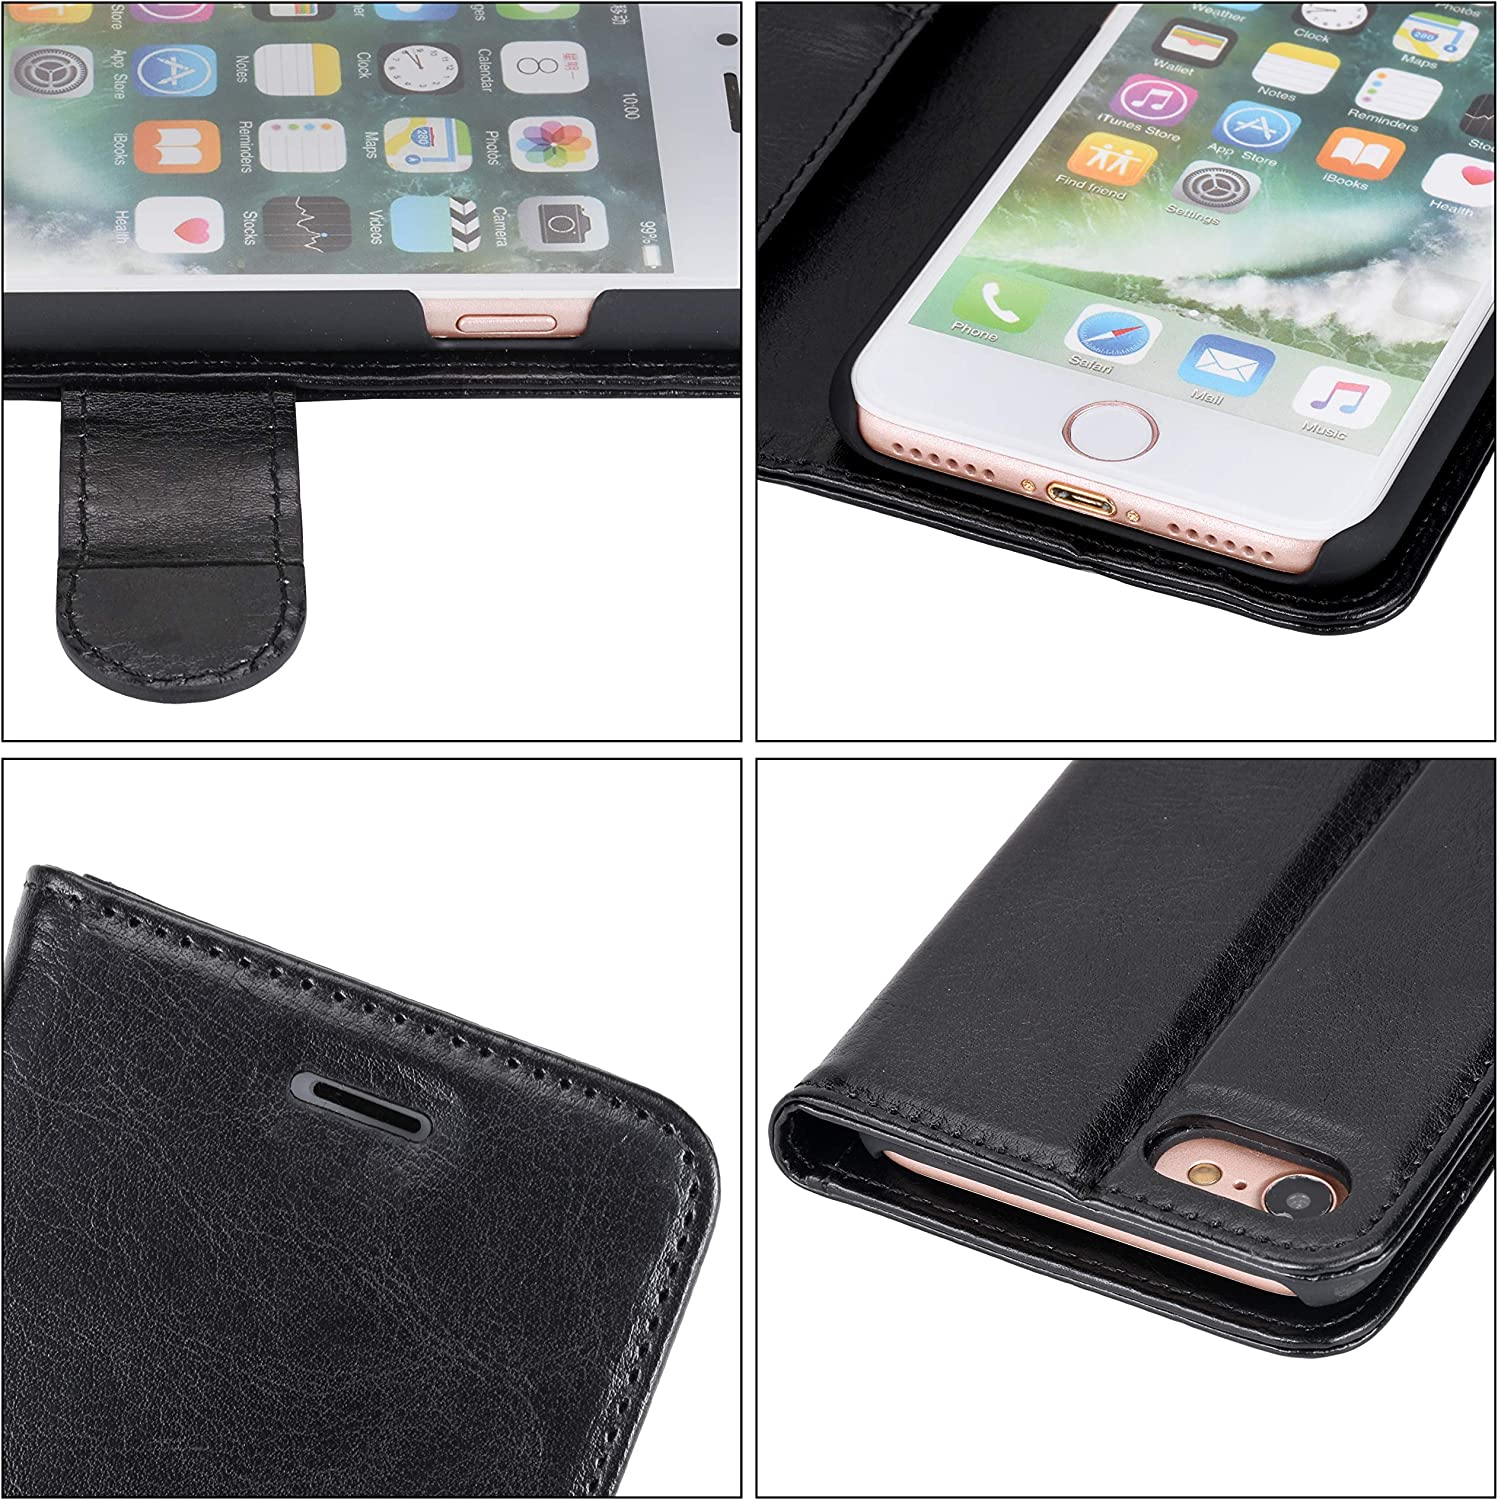 iPhone 5s Case 5 Black iPhone SE Case Wisdompro Premium PU Leather 2-in-1 Protective Wallet Phone Case Folio Flip Cover with Kickstand and Credit Card Holder Slots for Apple iPhone SE 5s